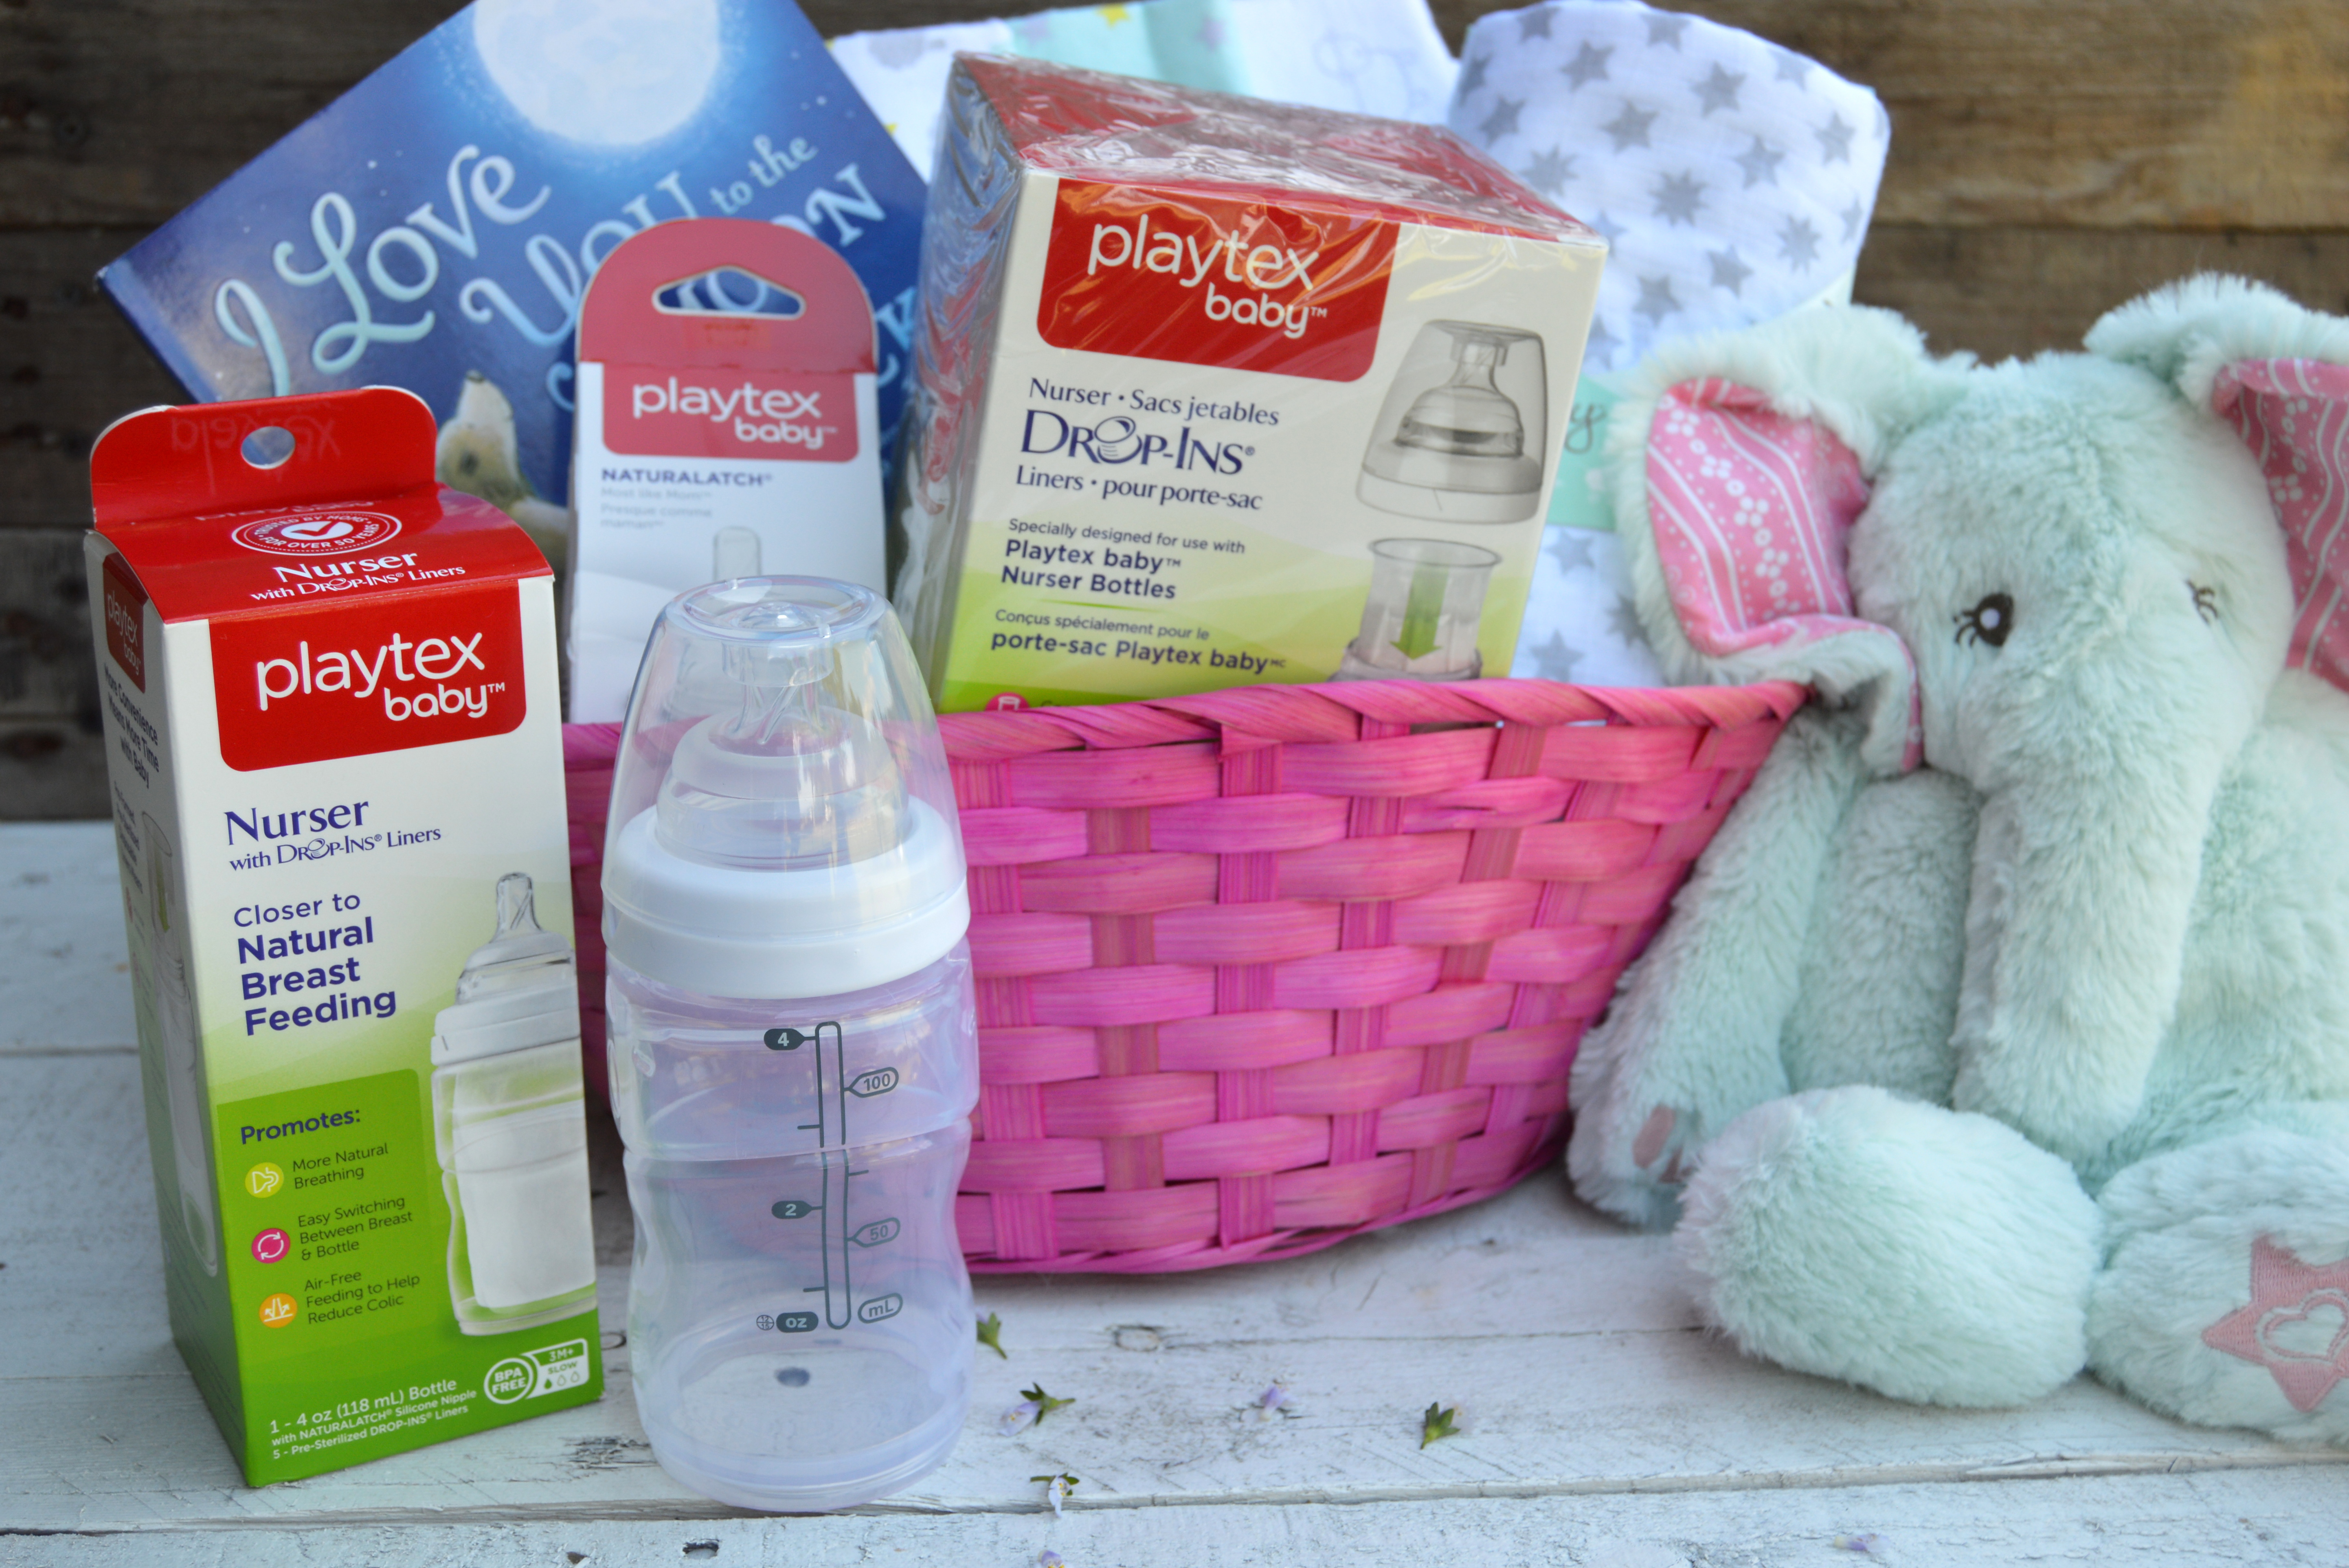 Baby shower gift basket my big fat happy life my favorite items for a baby shower gift basket for new moms betterbottles ad negle Image collections